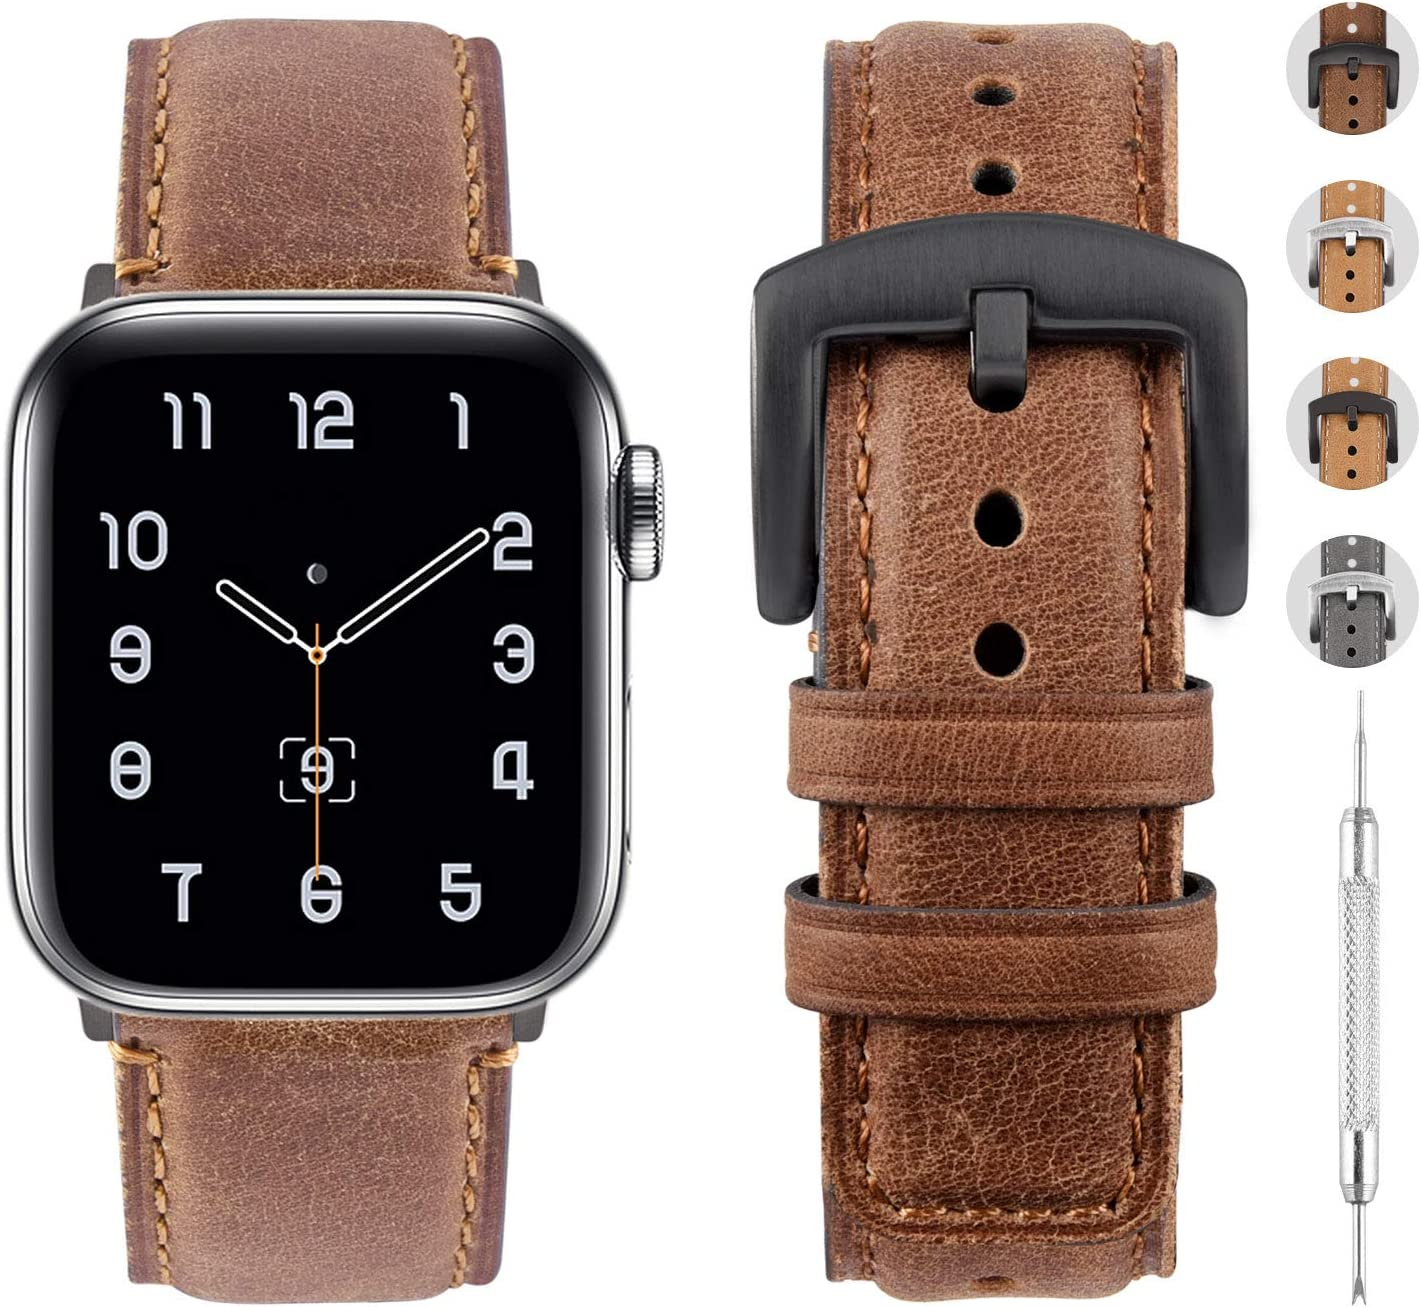 Fullmosa Leather Watch Bands Compatible with Apple Watch Band 38mm 40mm 42mm 44mm, Genuine Leather Replacement Strap Compatible with Apple Watch Series 6, SE, 5, 4, 3, 2, 1 Men Women